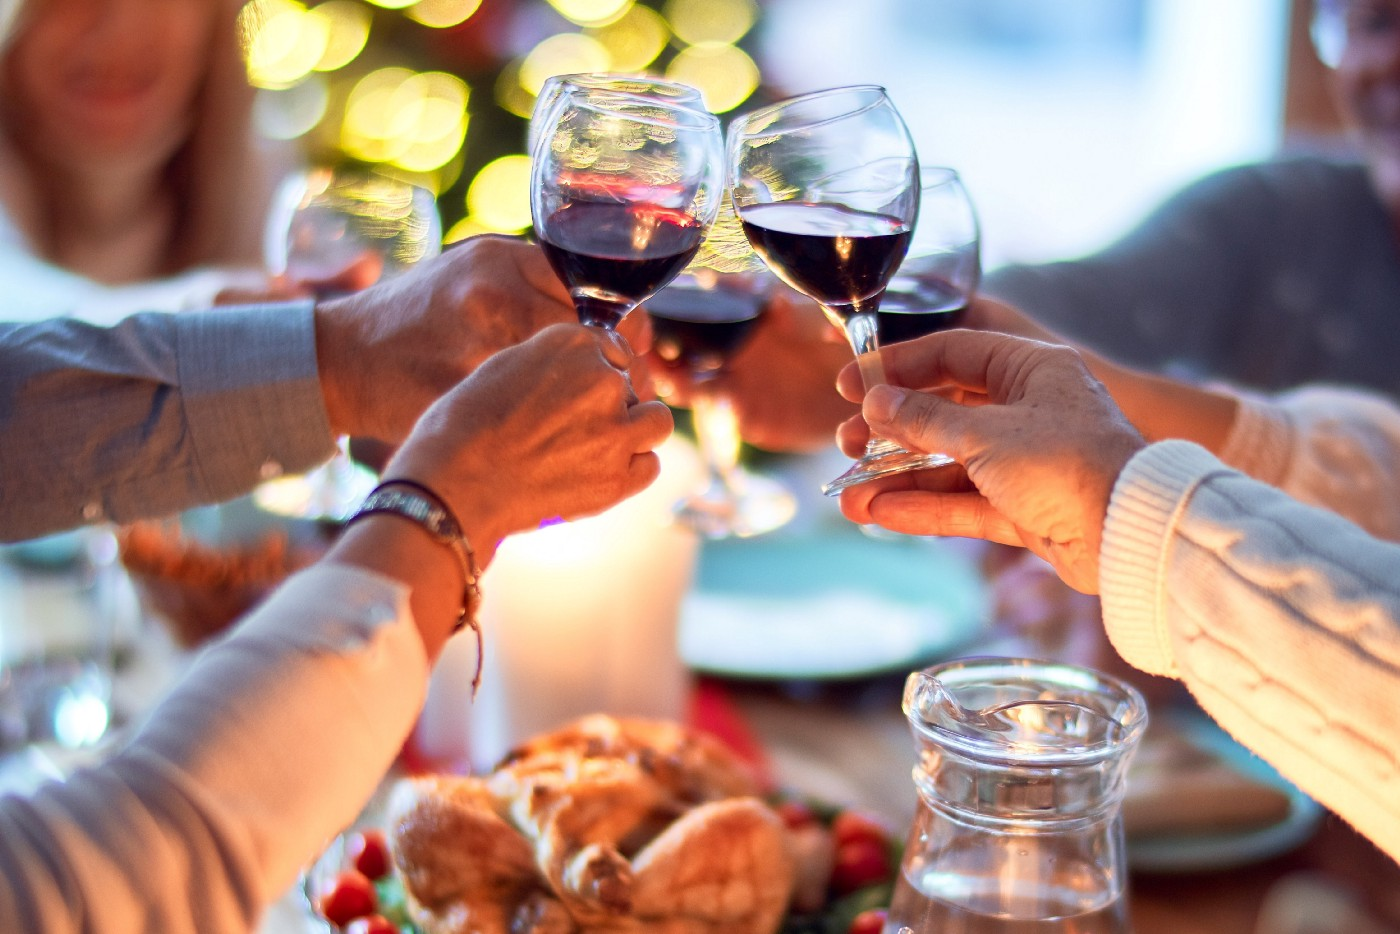 Friends raising their wine glasses in a toast around the dinner table.